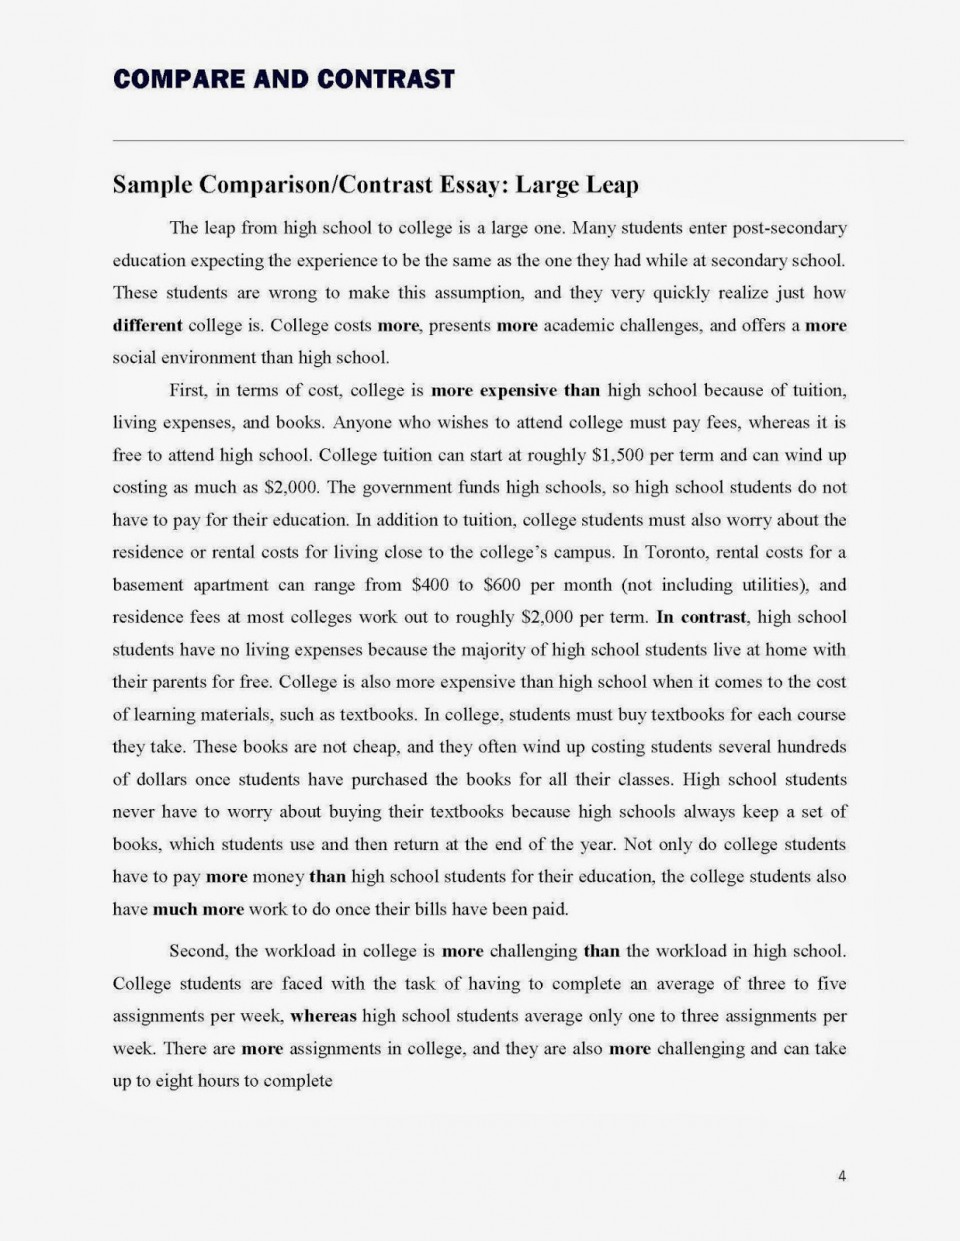 011 Compare And Contrast Essay Compareandcontrastessay Page 4h125 Frightening Topics For College Students Rubric 4th Grade Ideas 7th 960